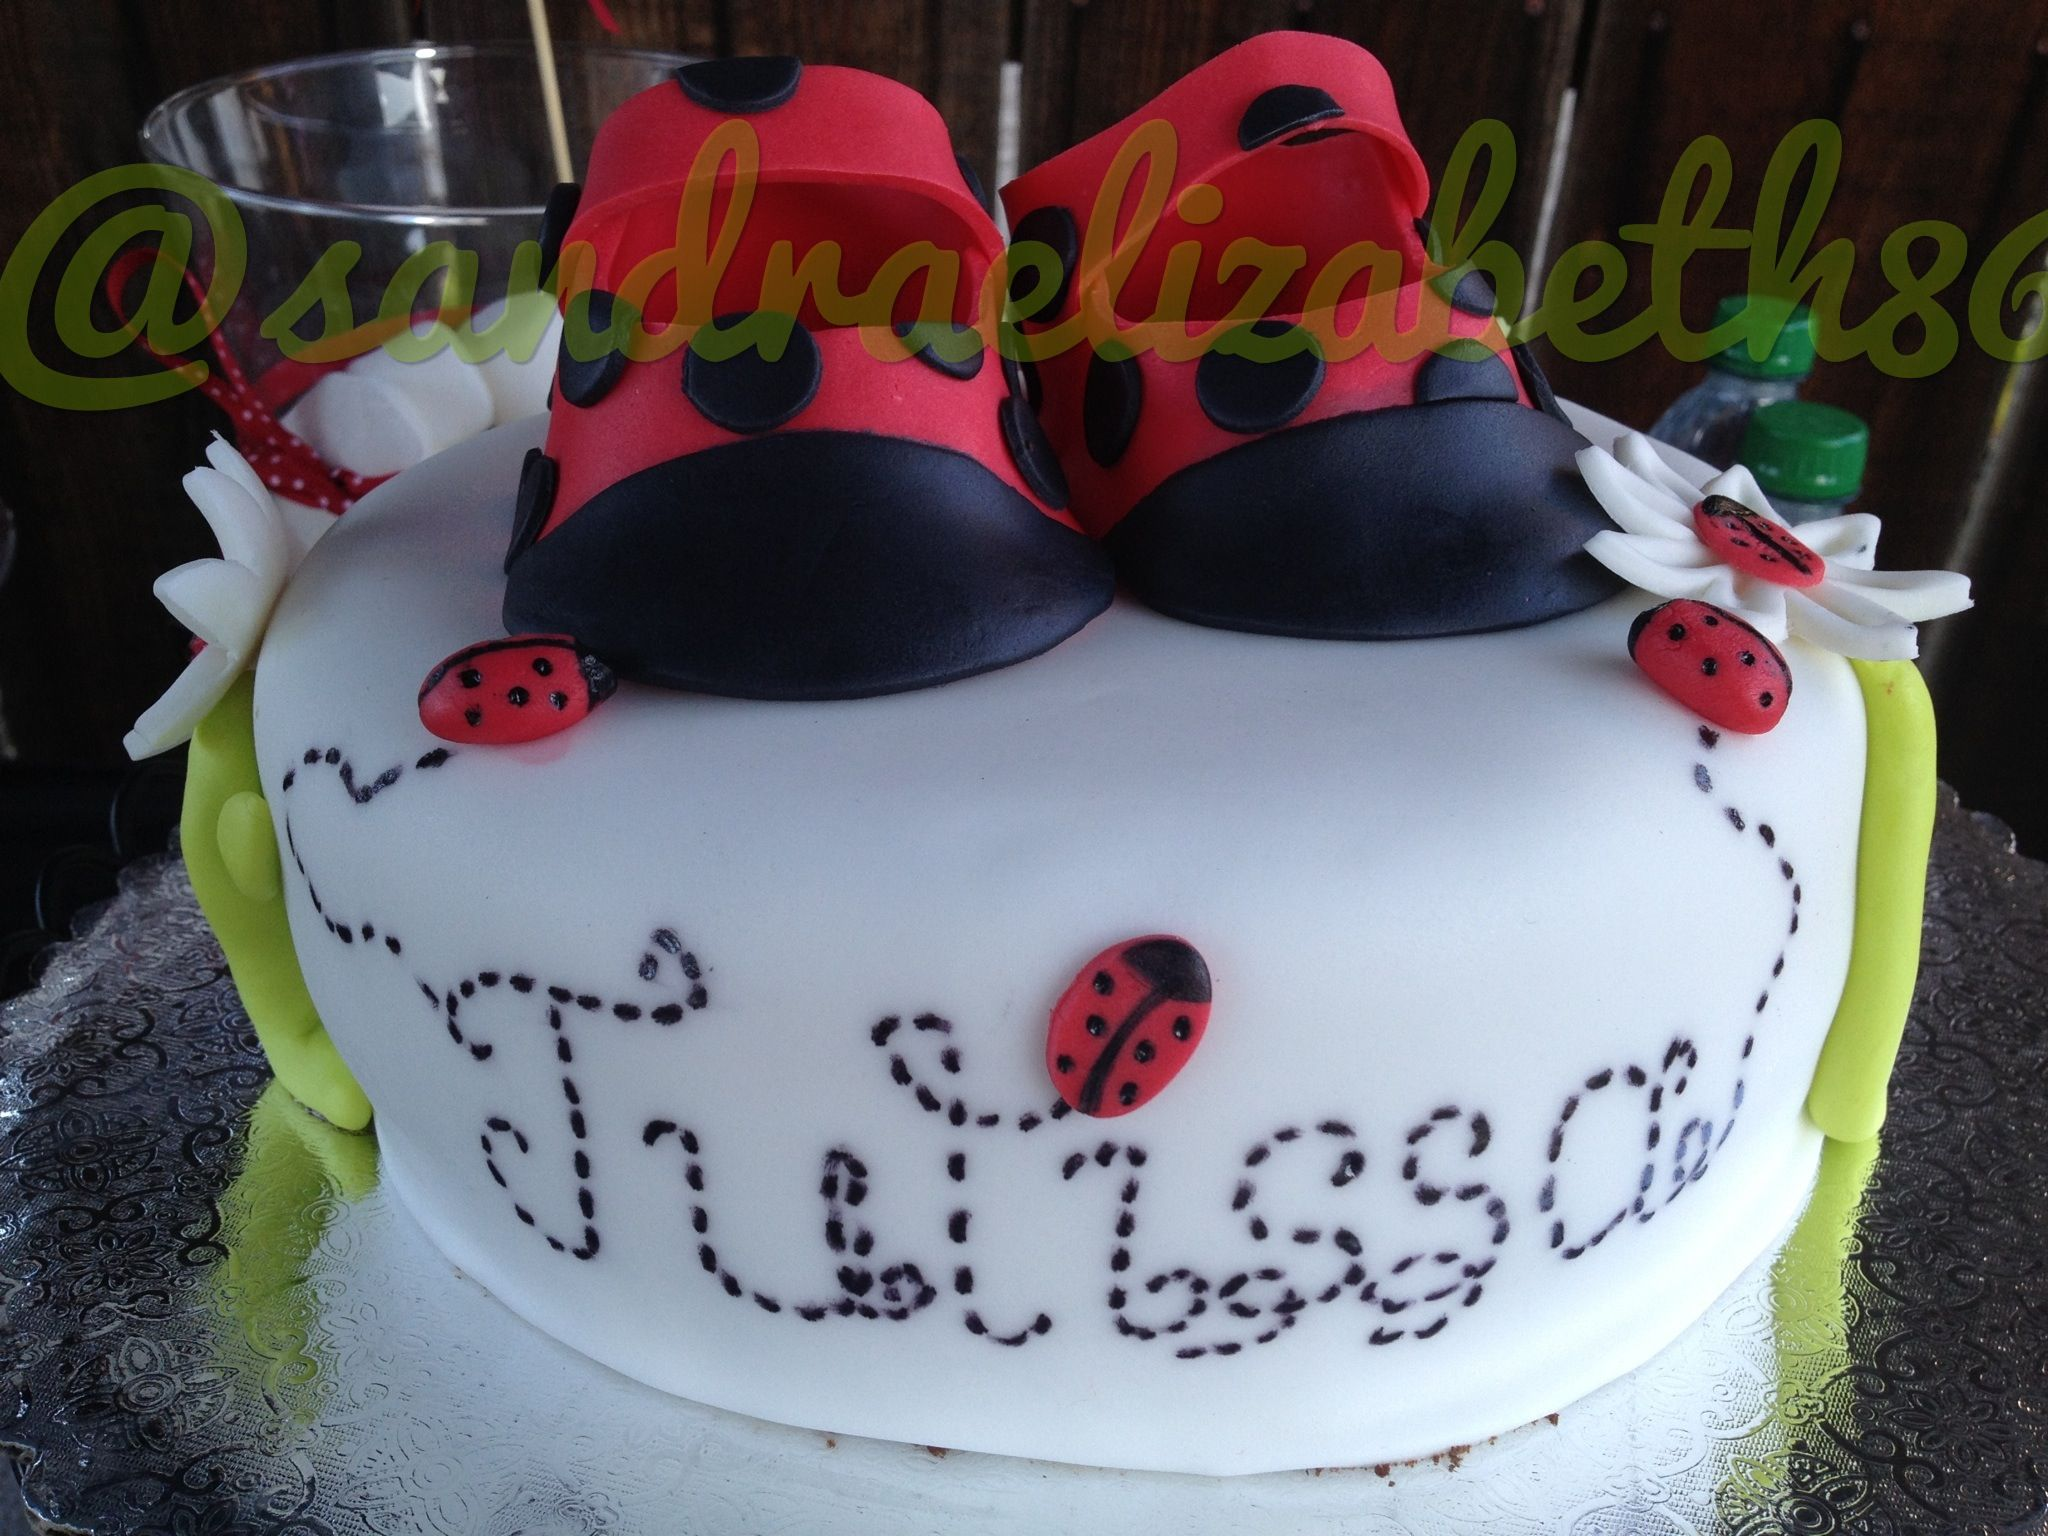 Made this one myself ladybug baby shower cake For my friend